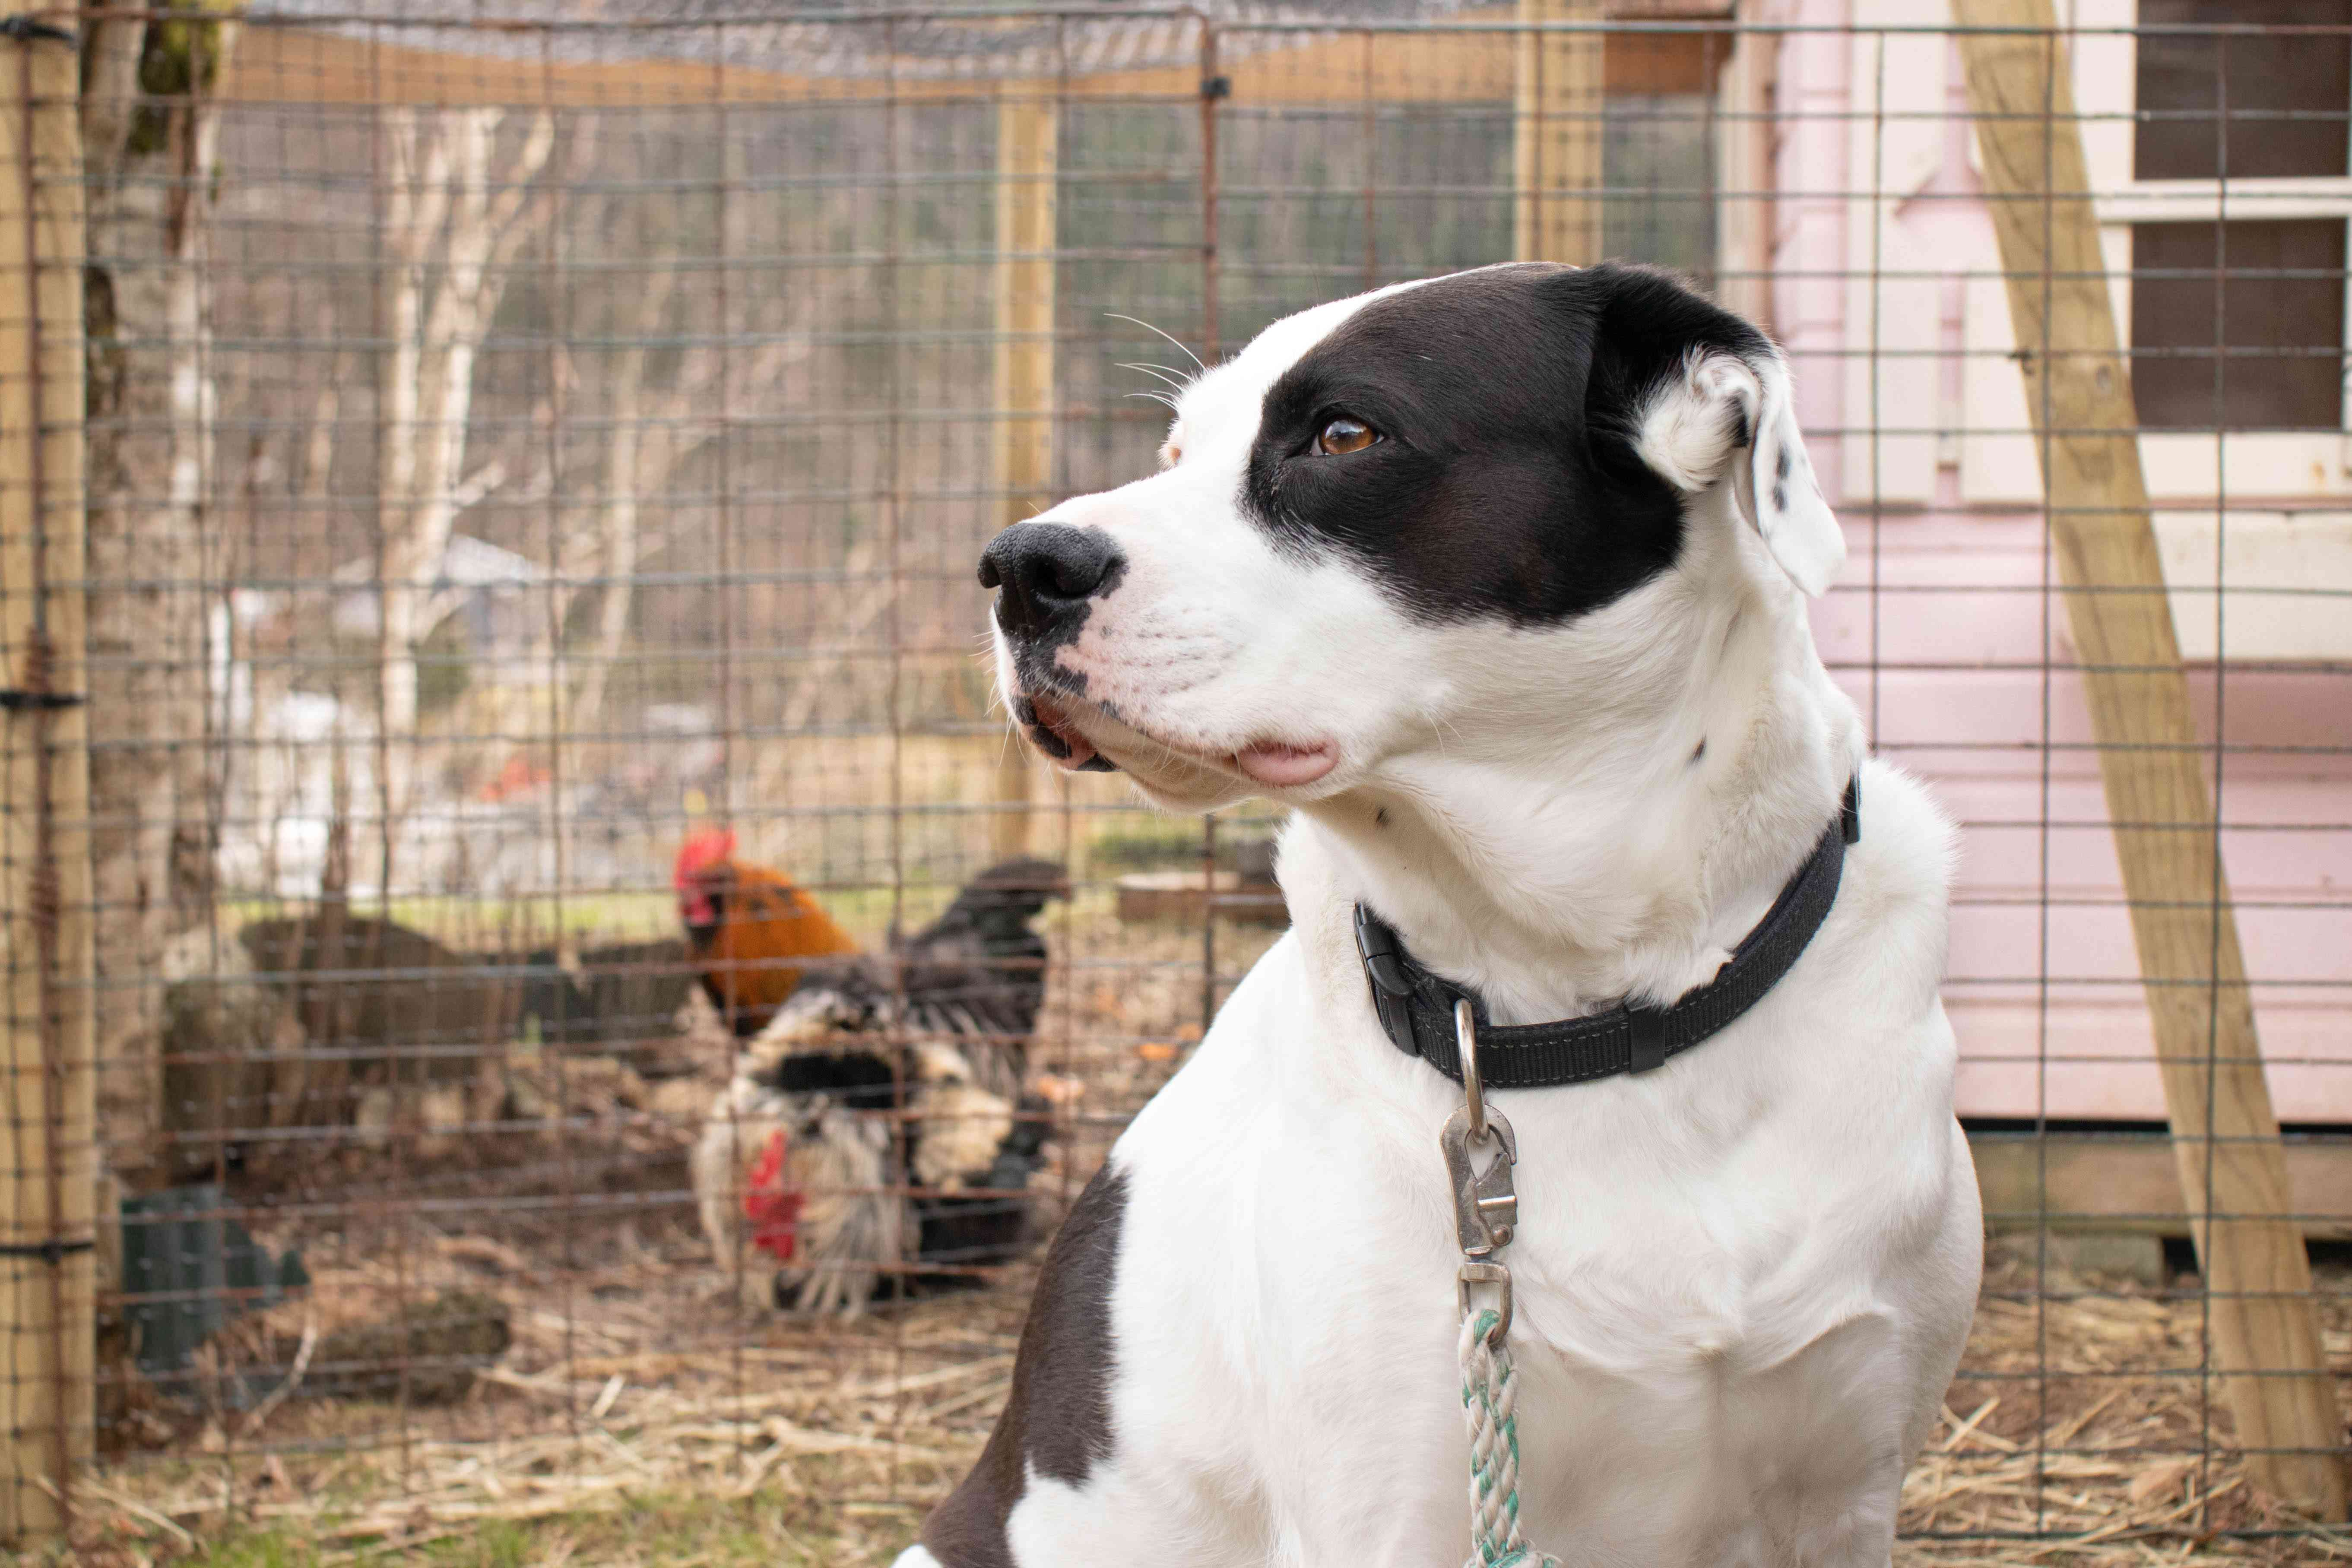 Black and white dog sitting in front of chicken coop for protection